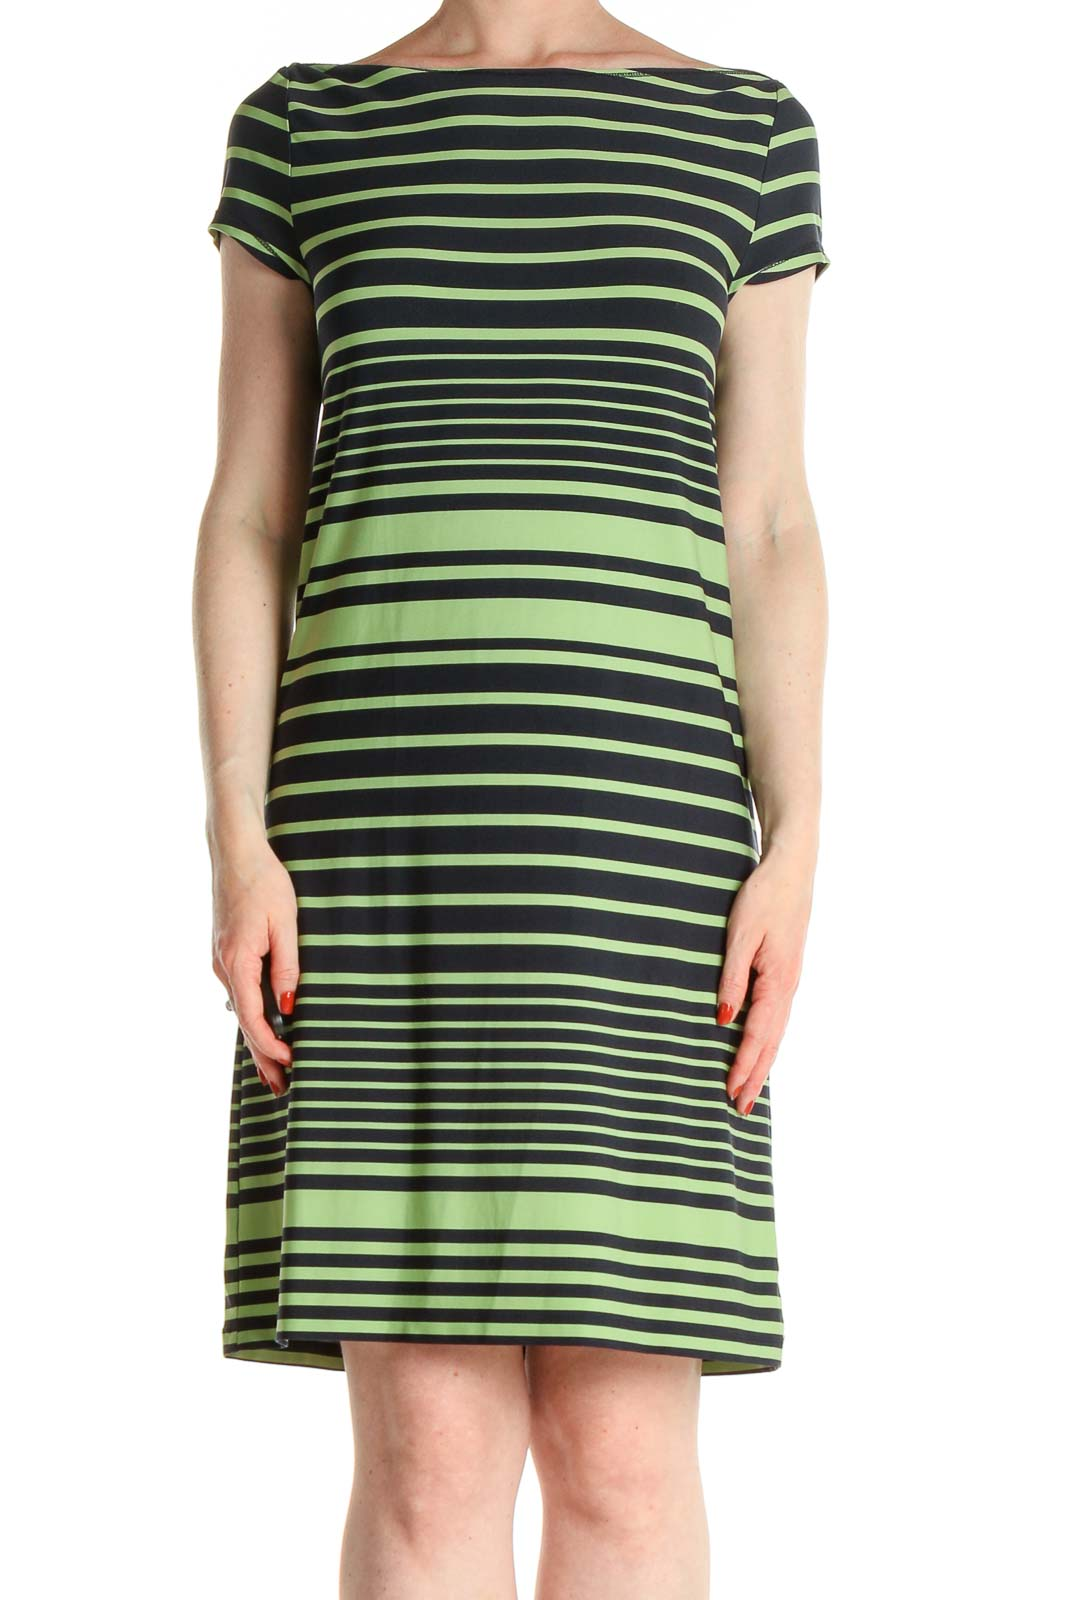 Green Striped Day Dress Front